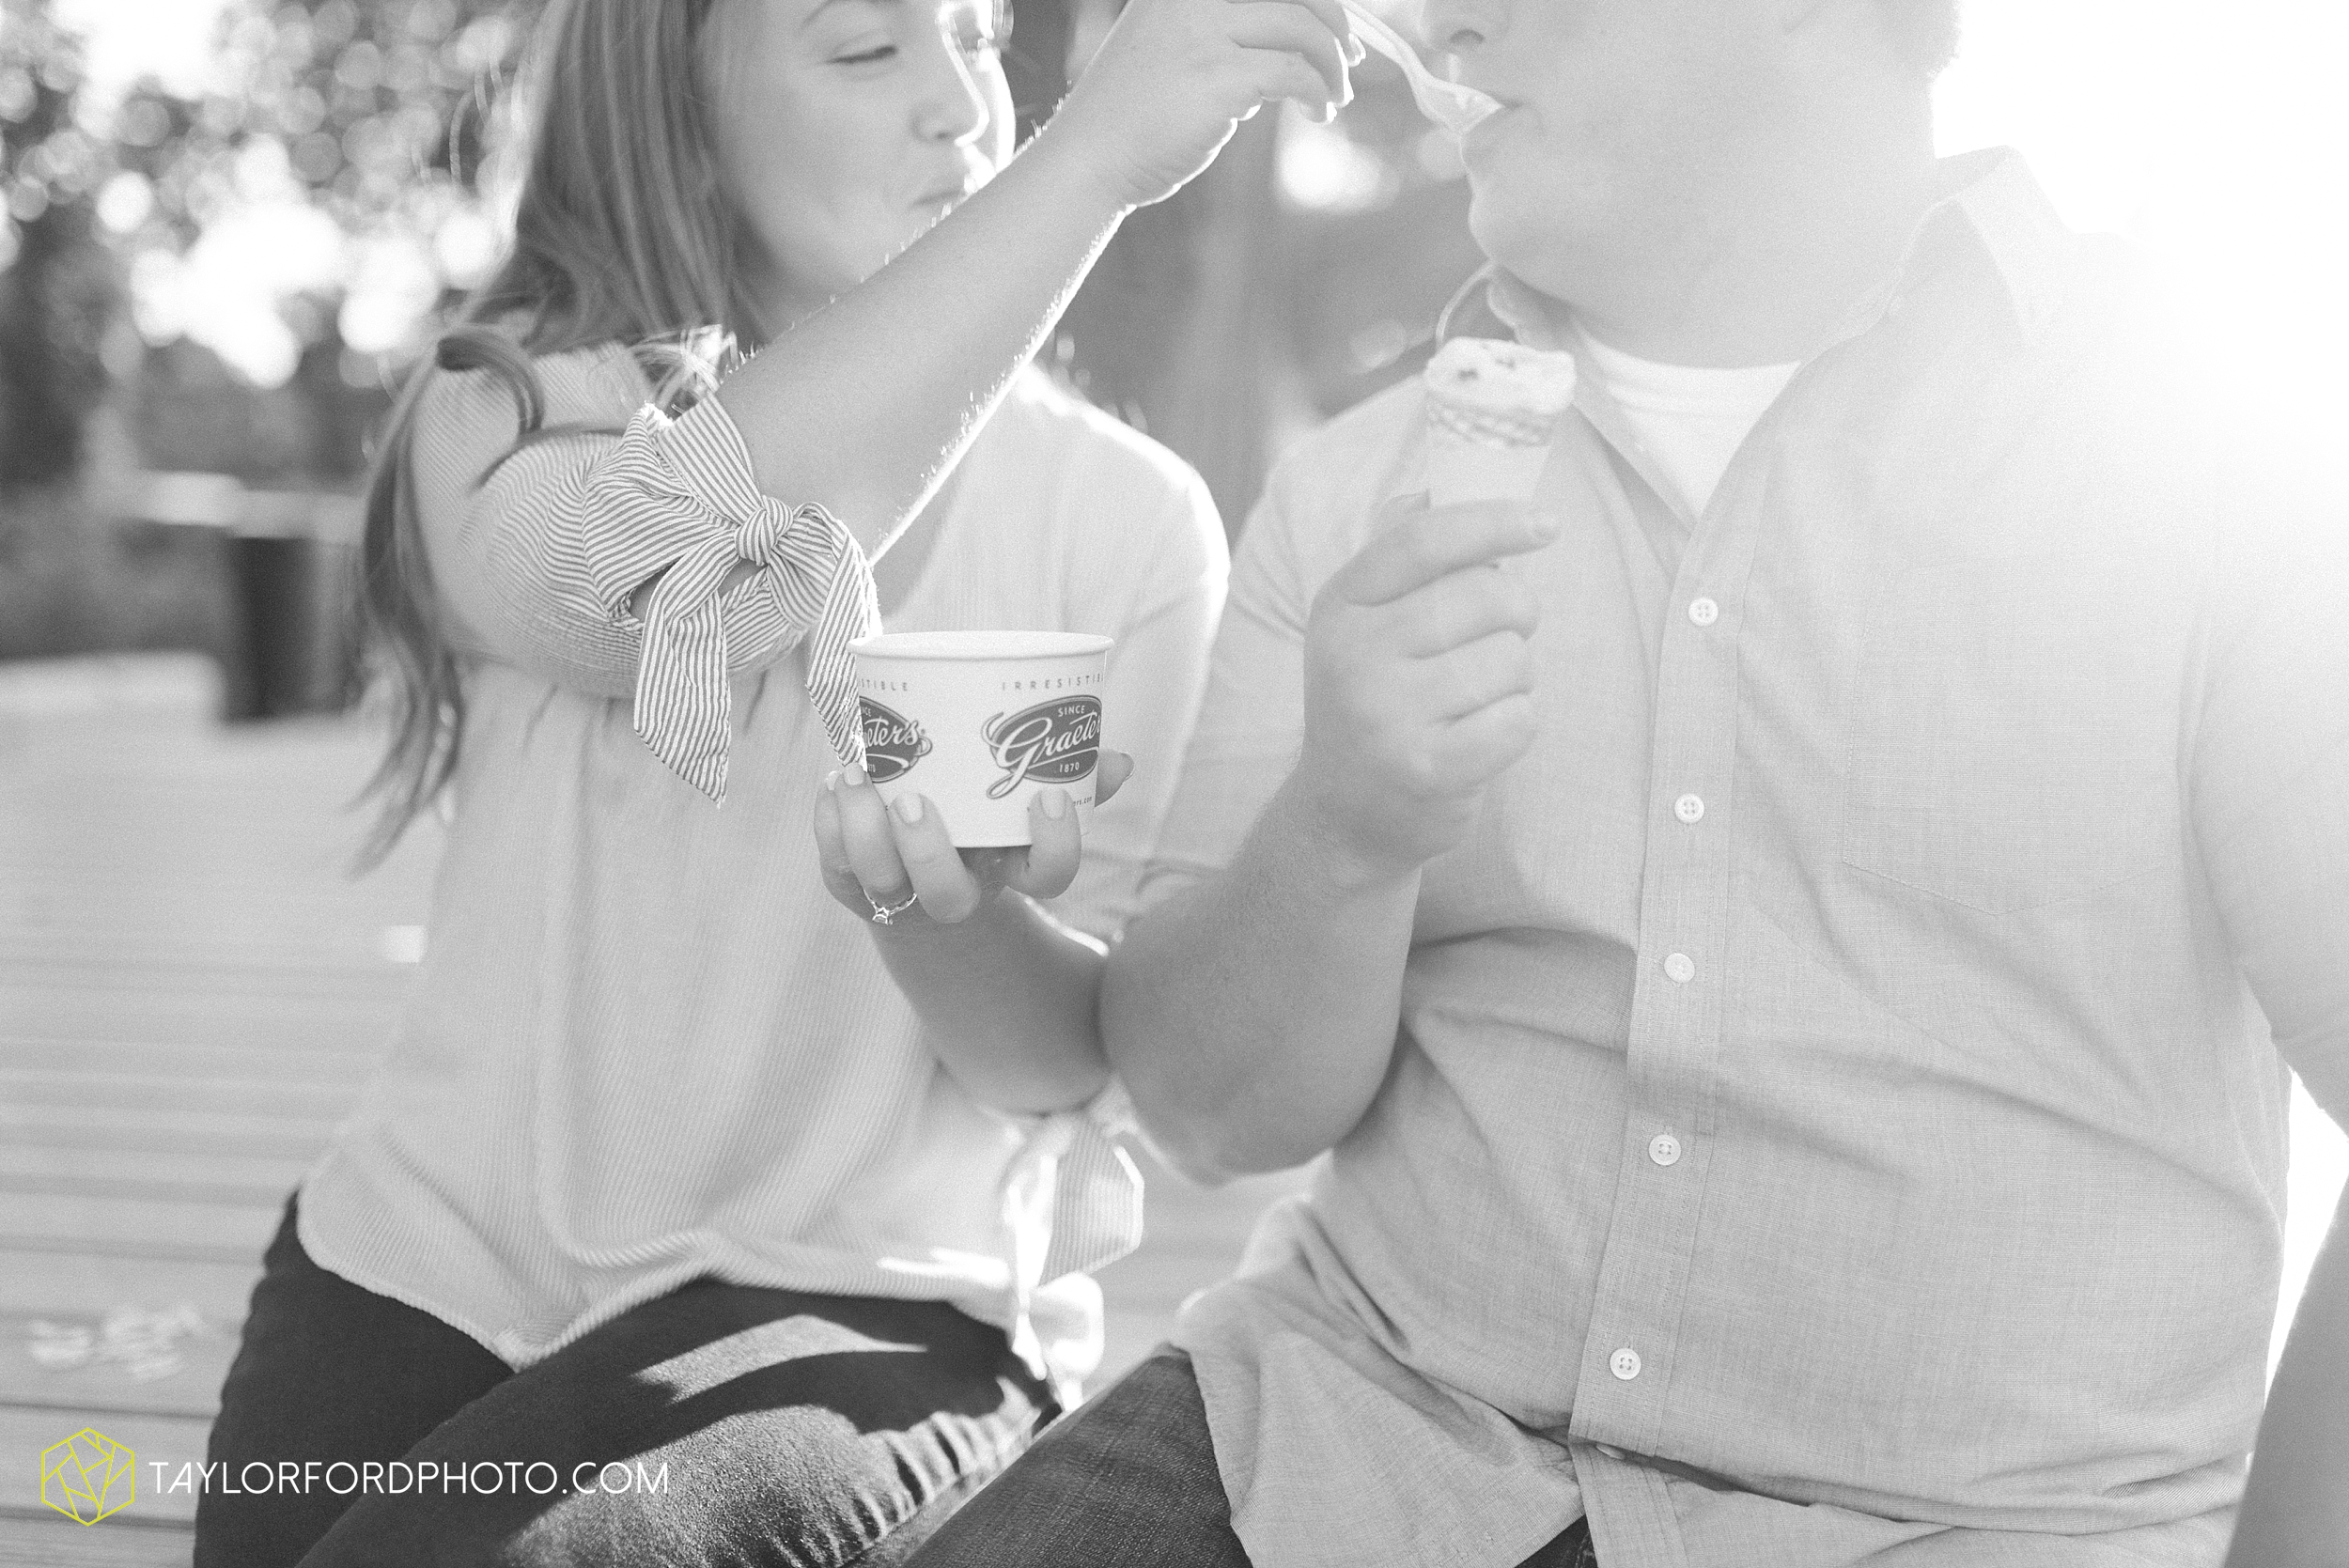 westerville-columbus-ohio-inniswood-metro-park-engagement-wedding-fourth-friday-photographer-Taylor-Ford-Photography_8779.jpg